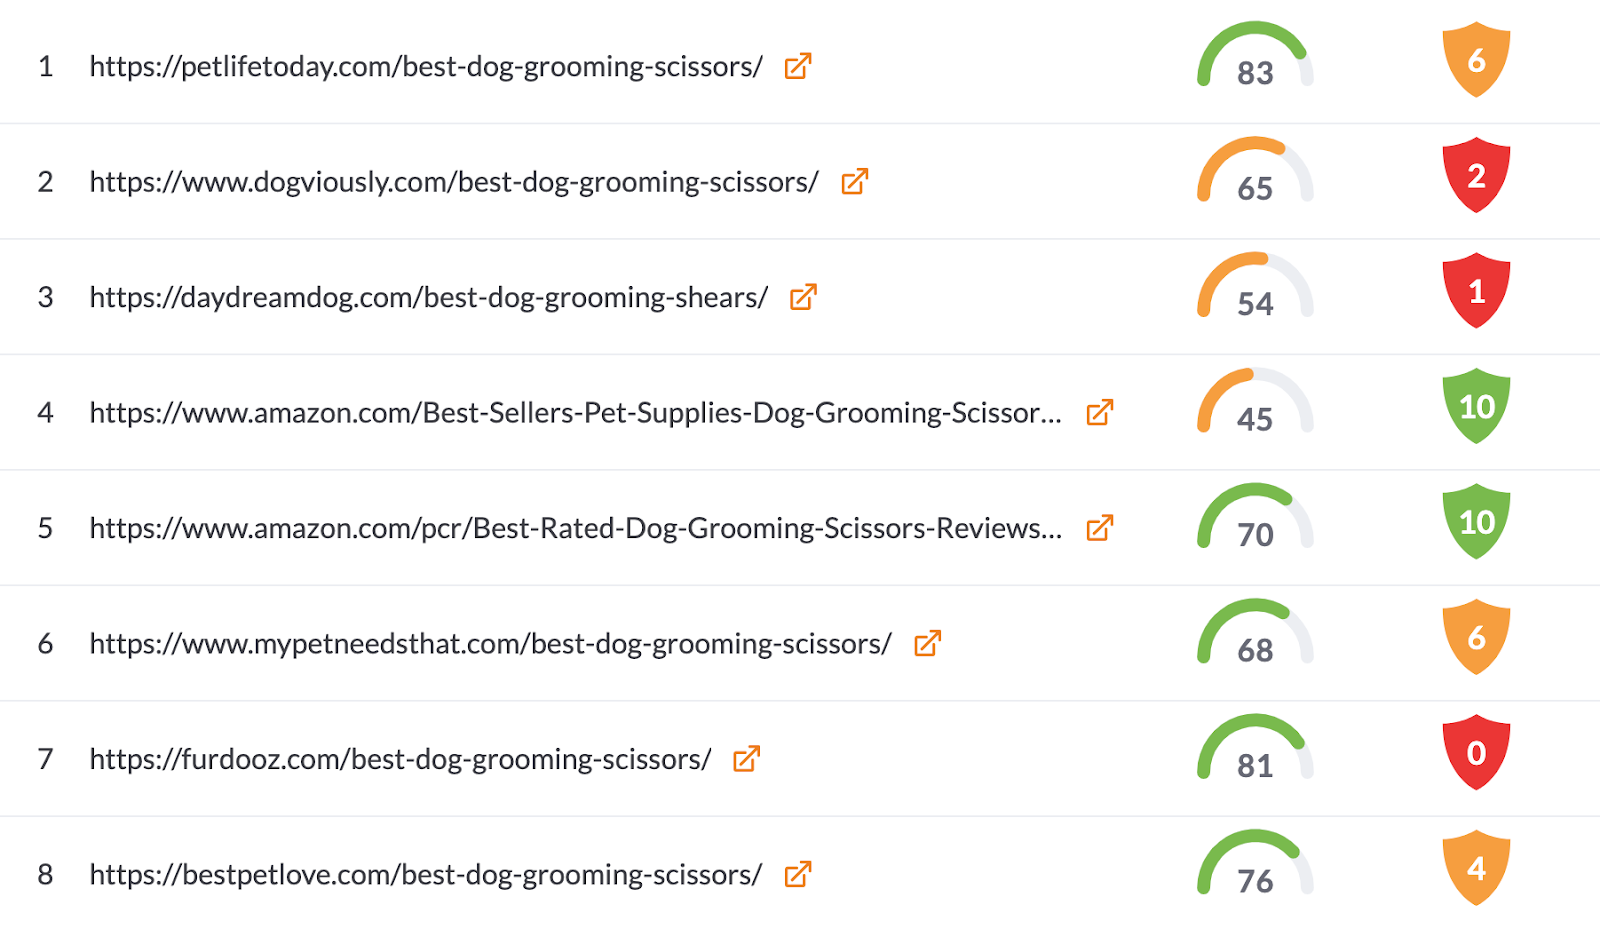 competition for dog grooming scissors keyword in surfer content editor customization panel